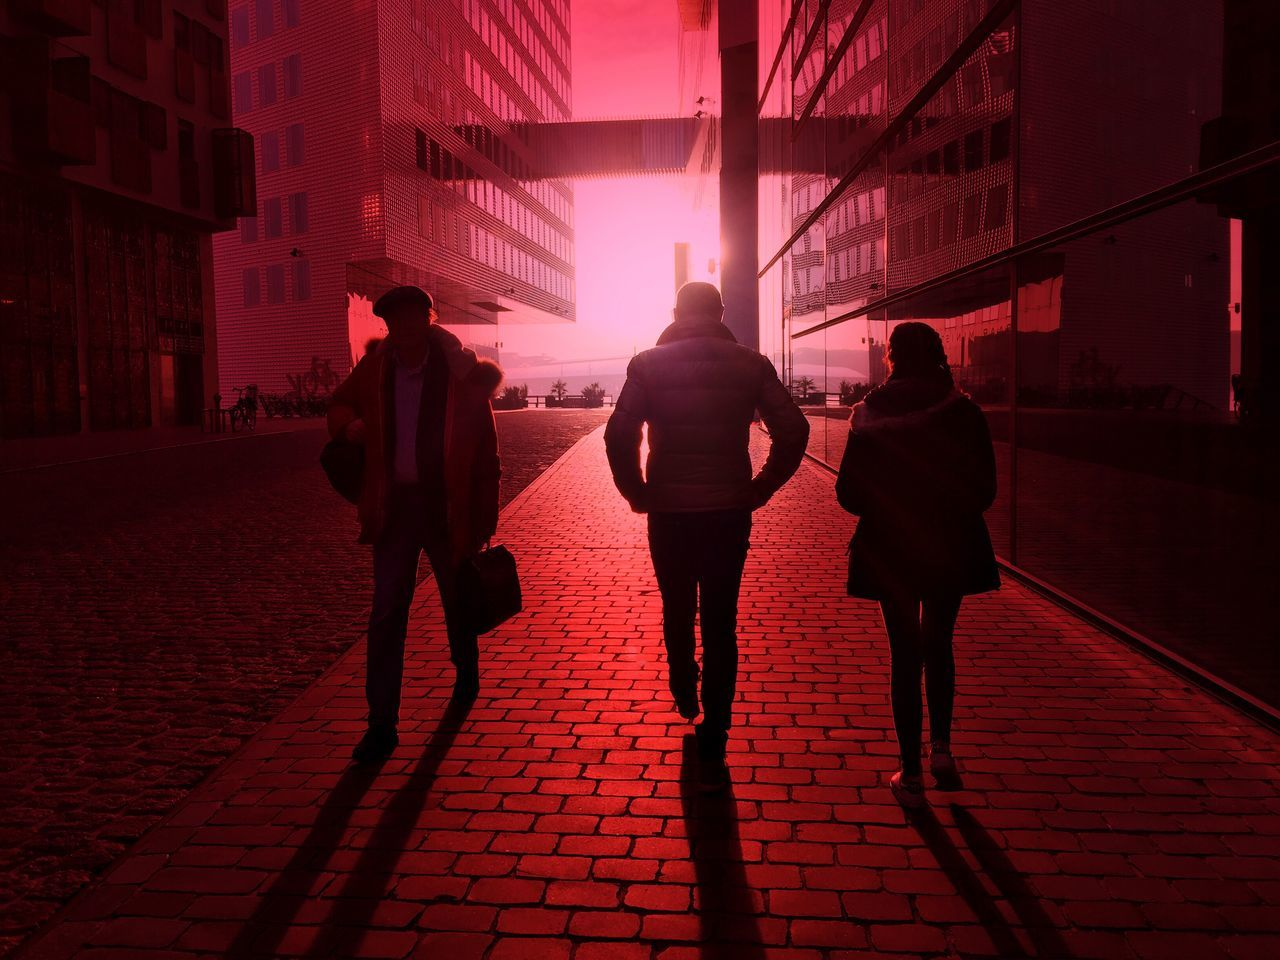 walking, full length, real people, rear view, building exterior, architecture, silhouette, sunlight, outdoors, built structure, sunset, city, red, women, lifestyles, modern, togetherness, men, friendship, day, sky, people